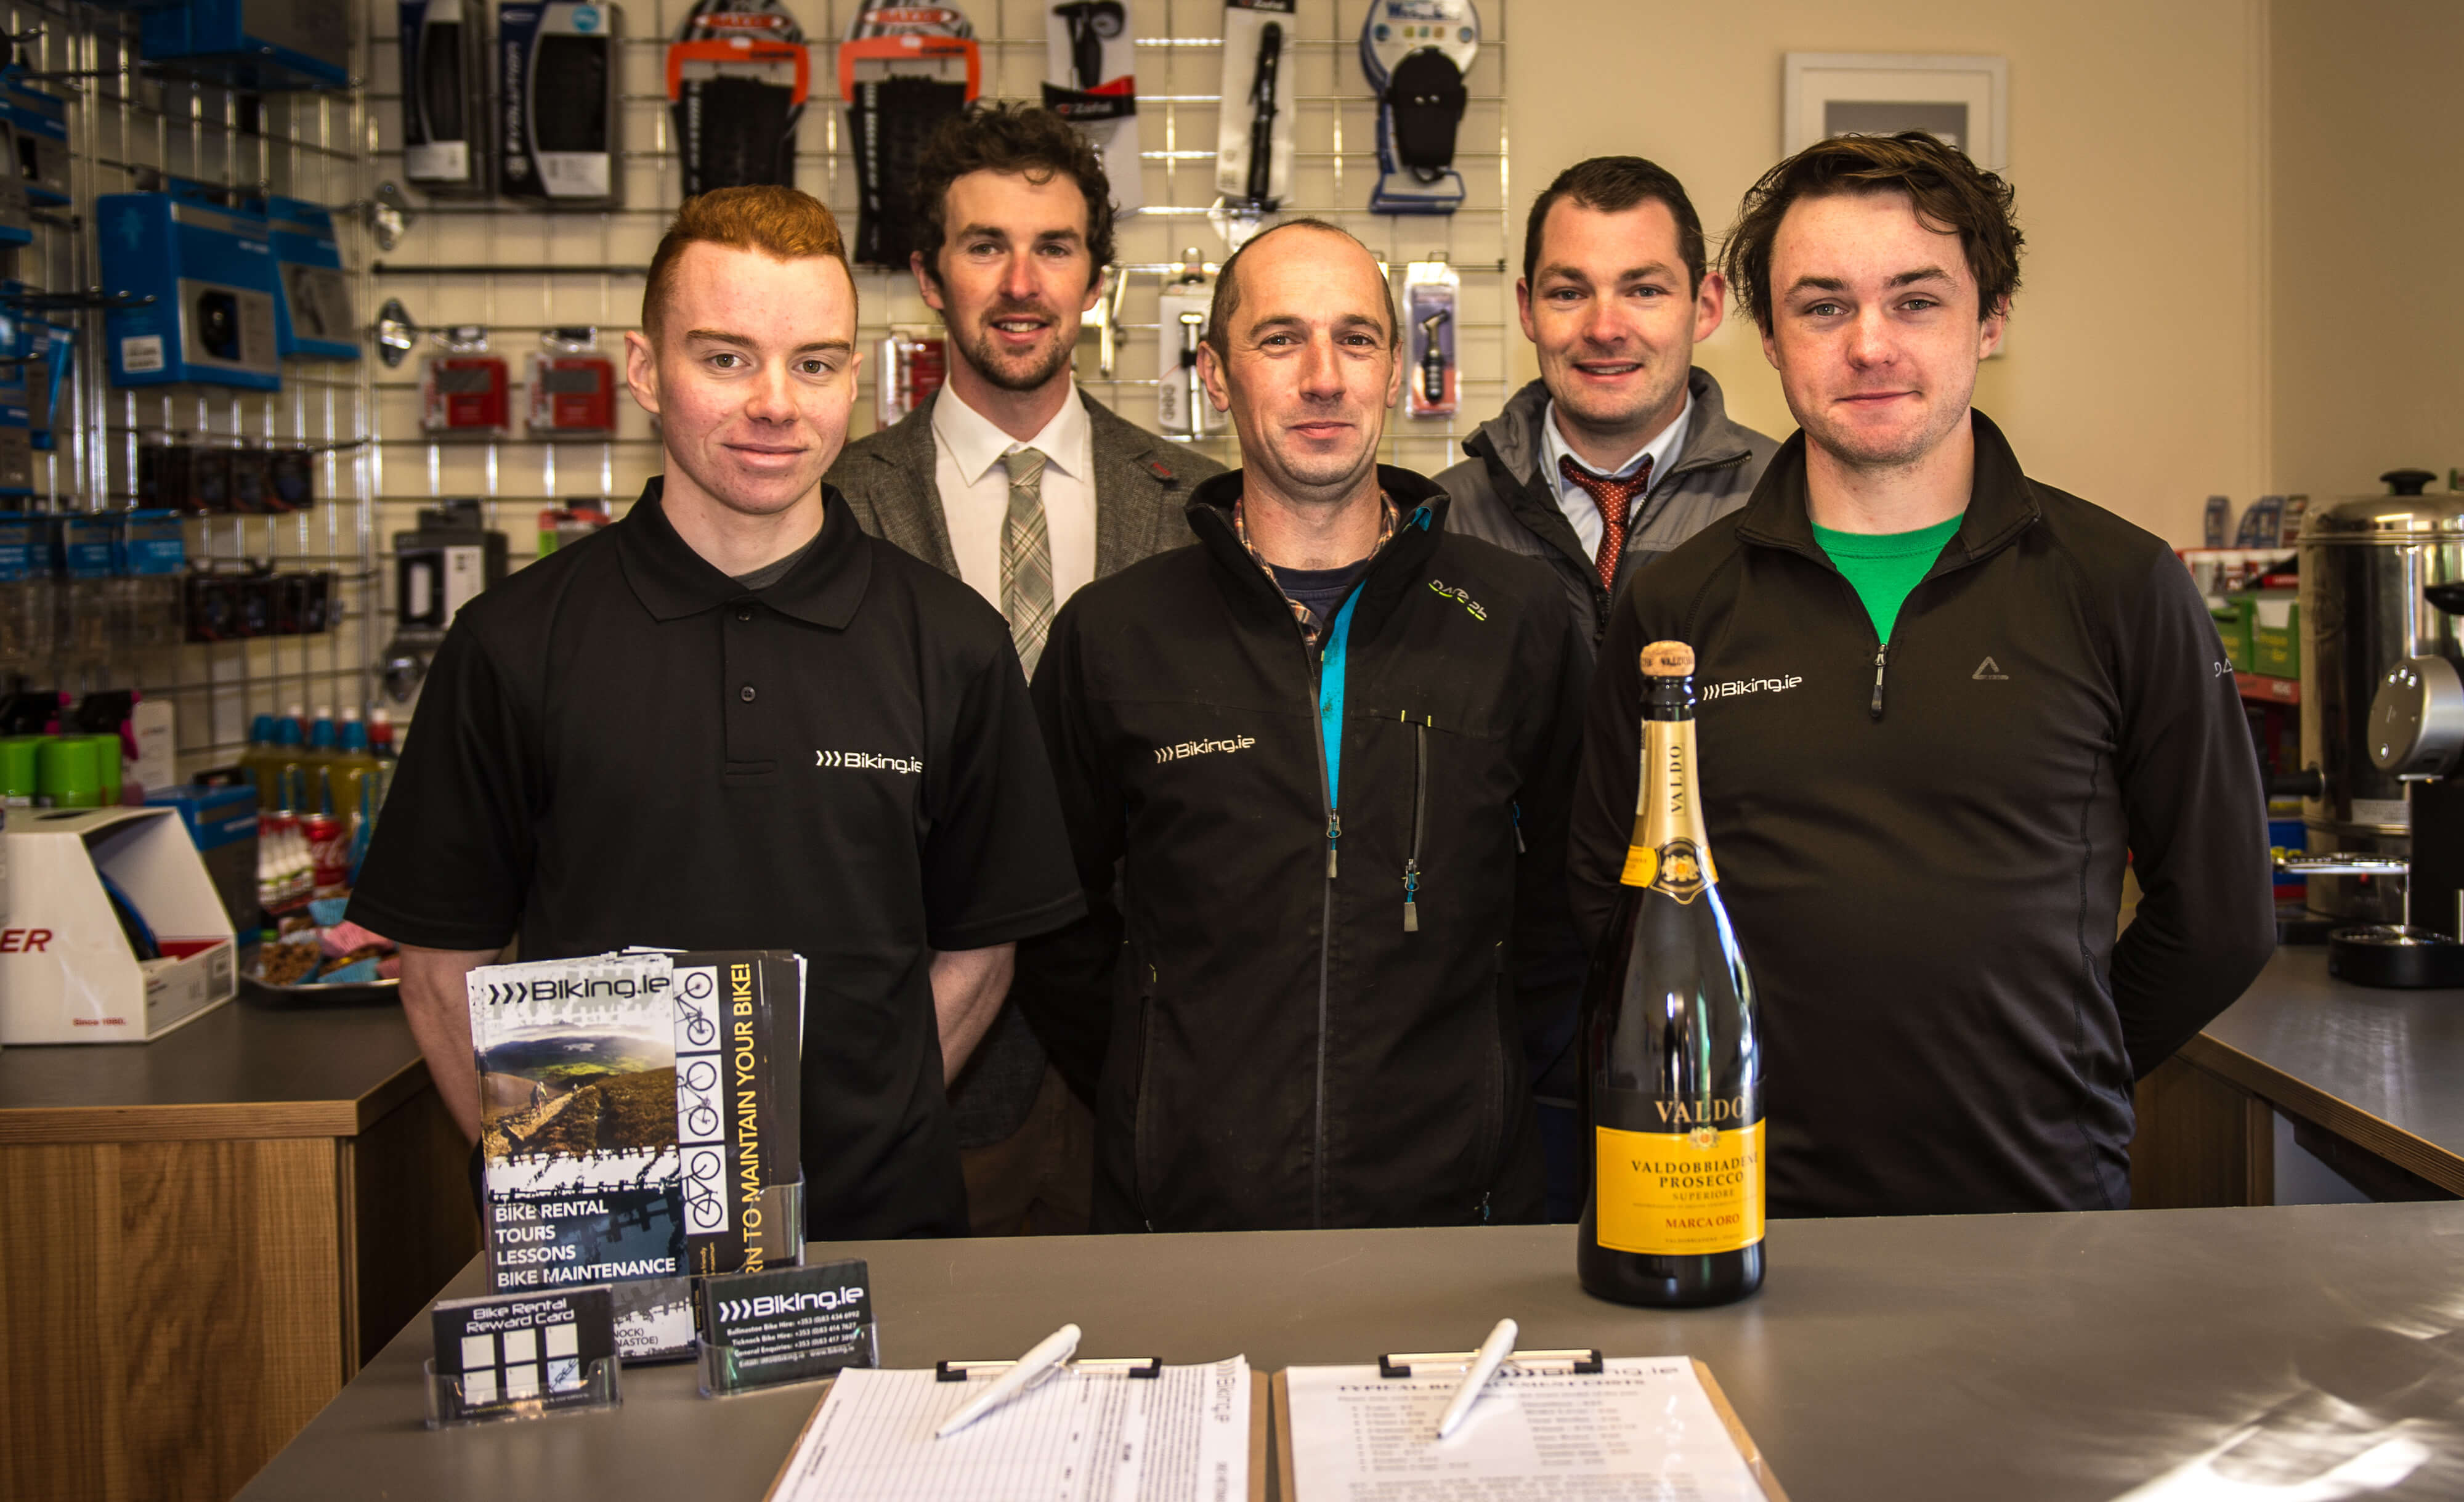 Niall Davis (back left) and the Biking.ie team